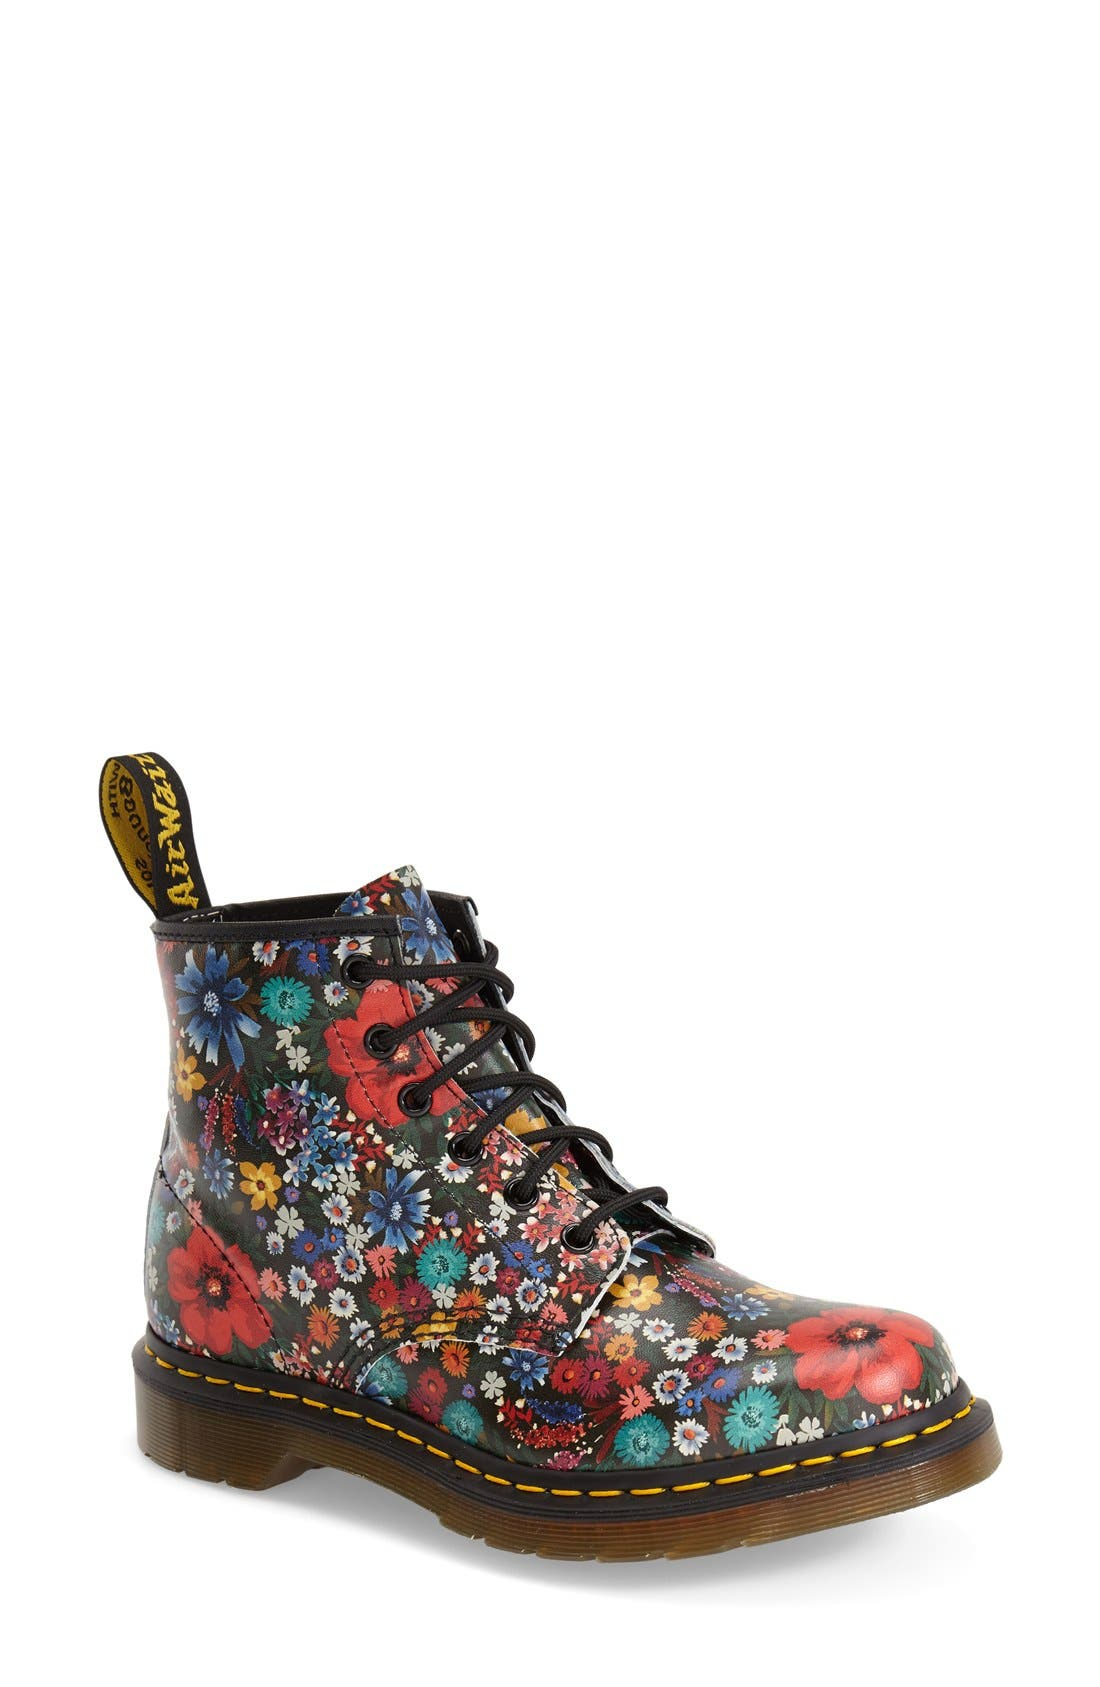 Alternate Image 1 Selected - Dr. Martens '101' Floral Print Leather Boot (Women)